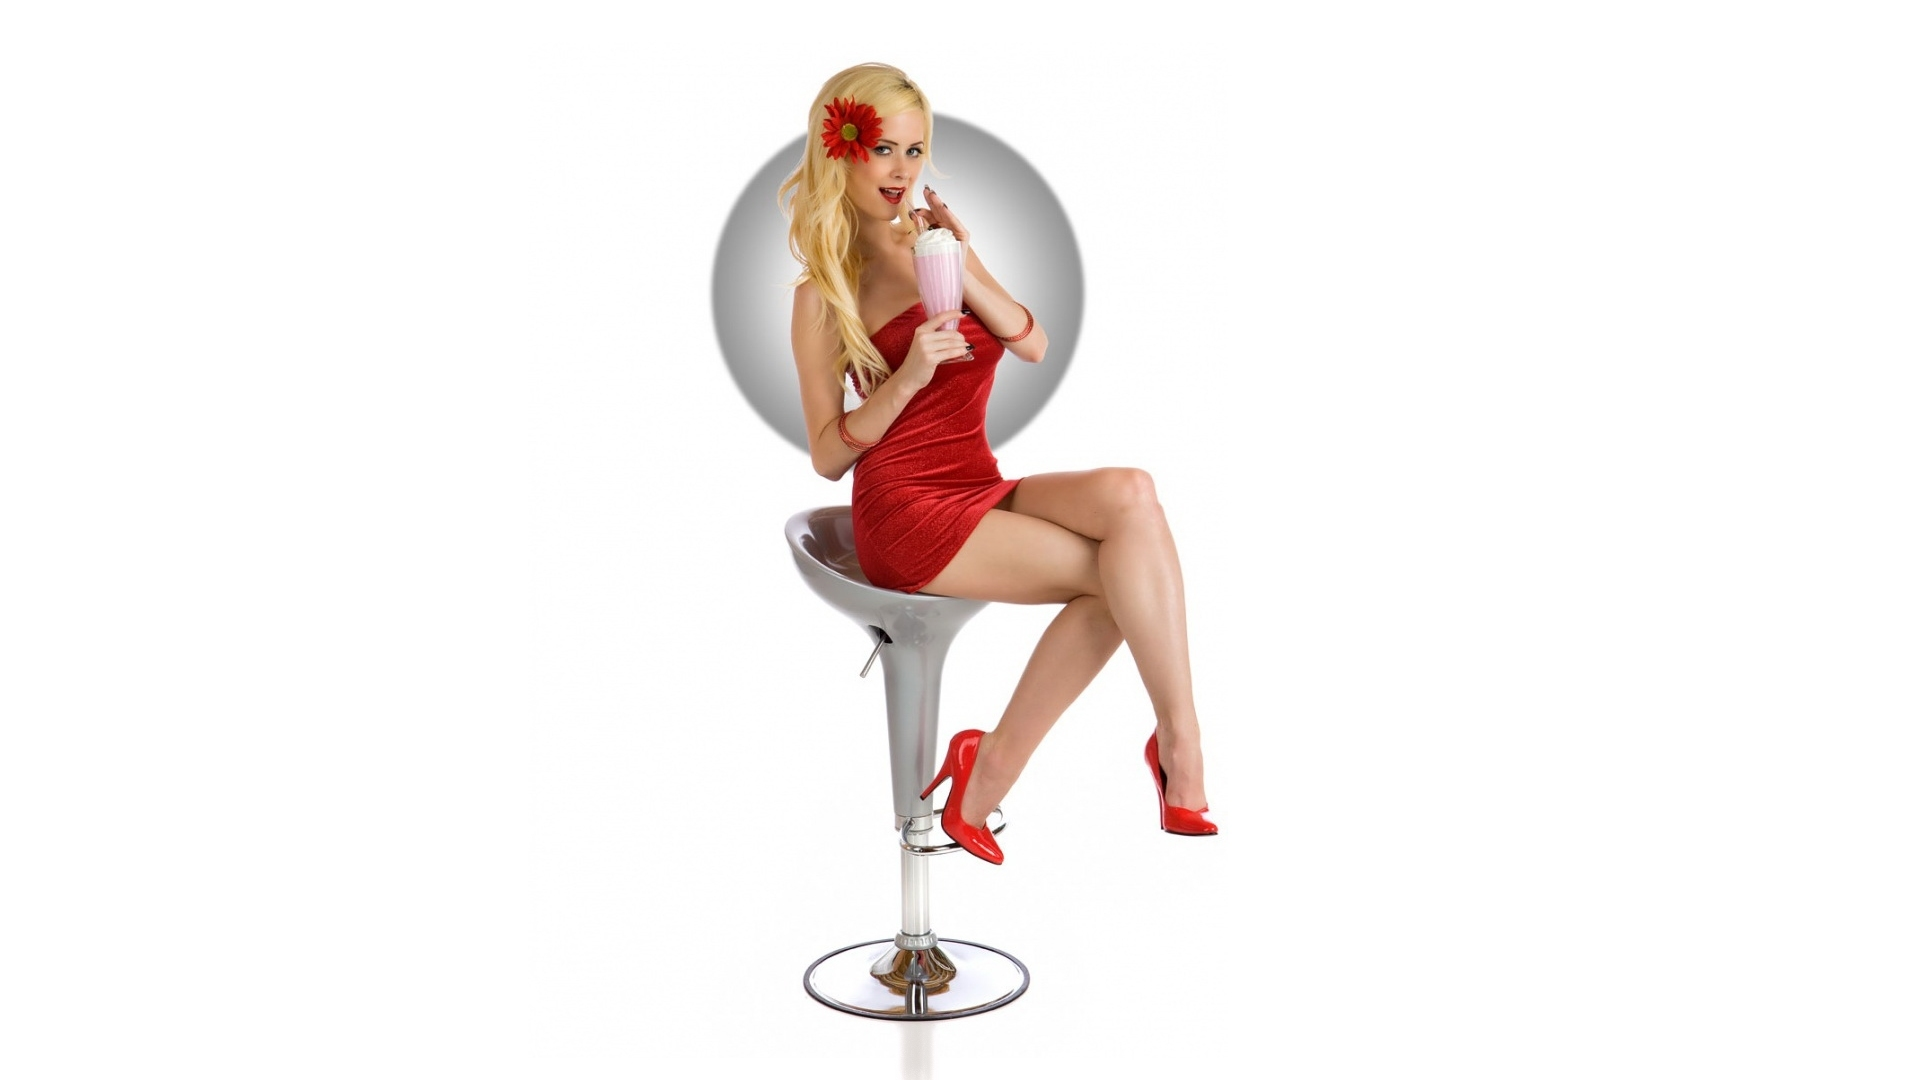 blondes woman pinups red HD Wallpaper